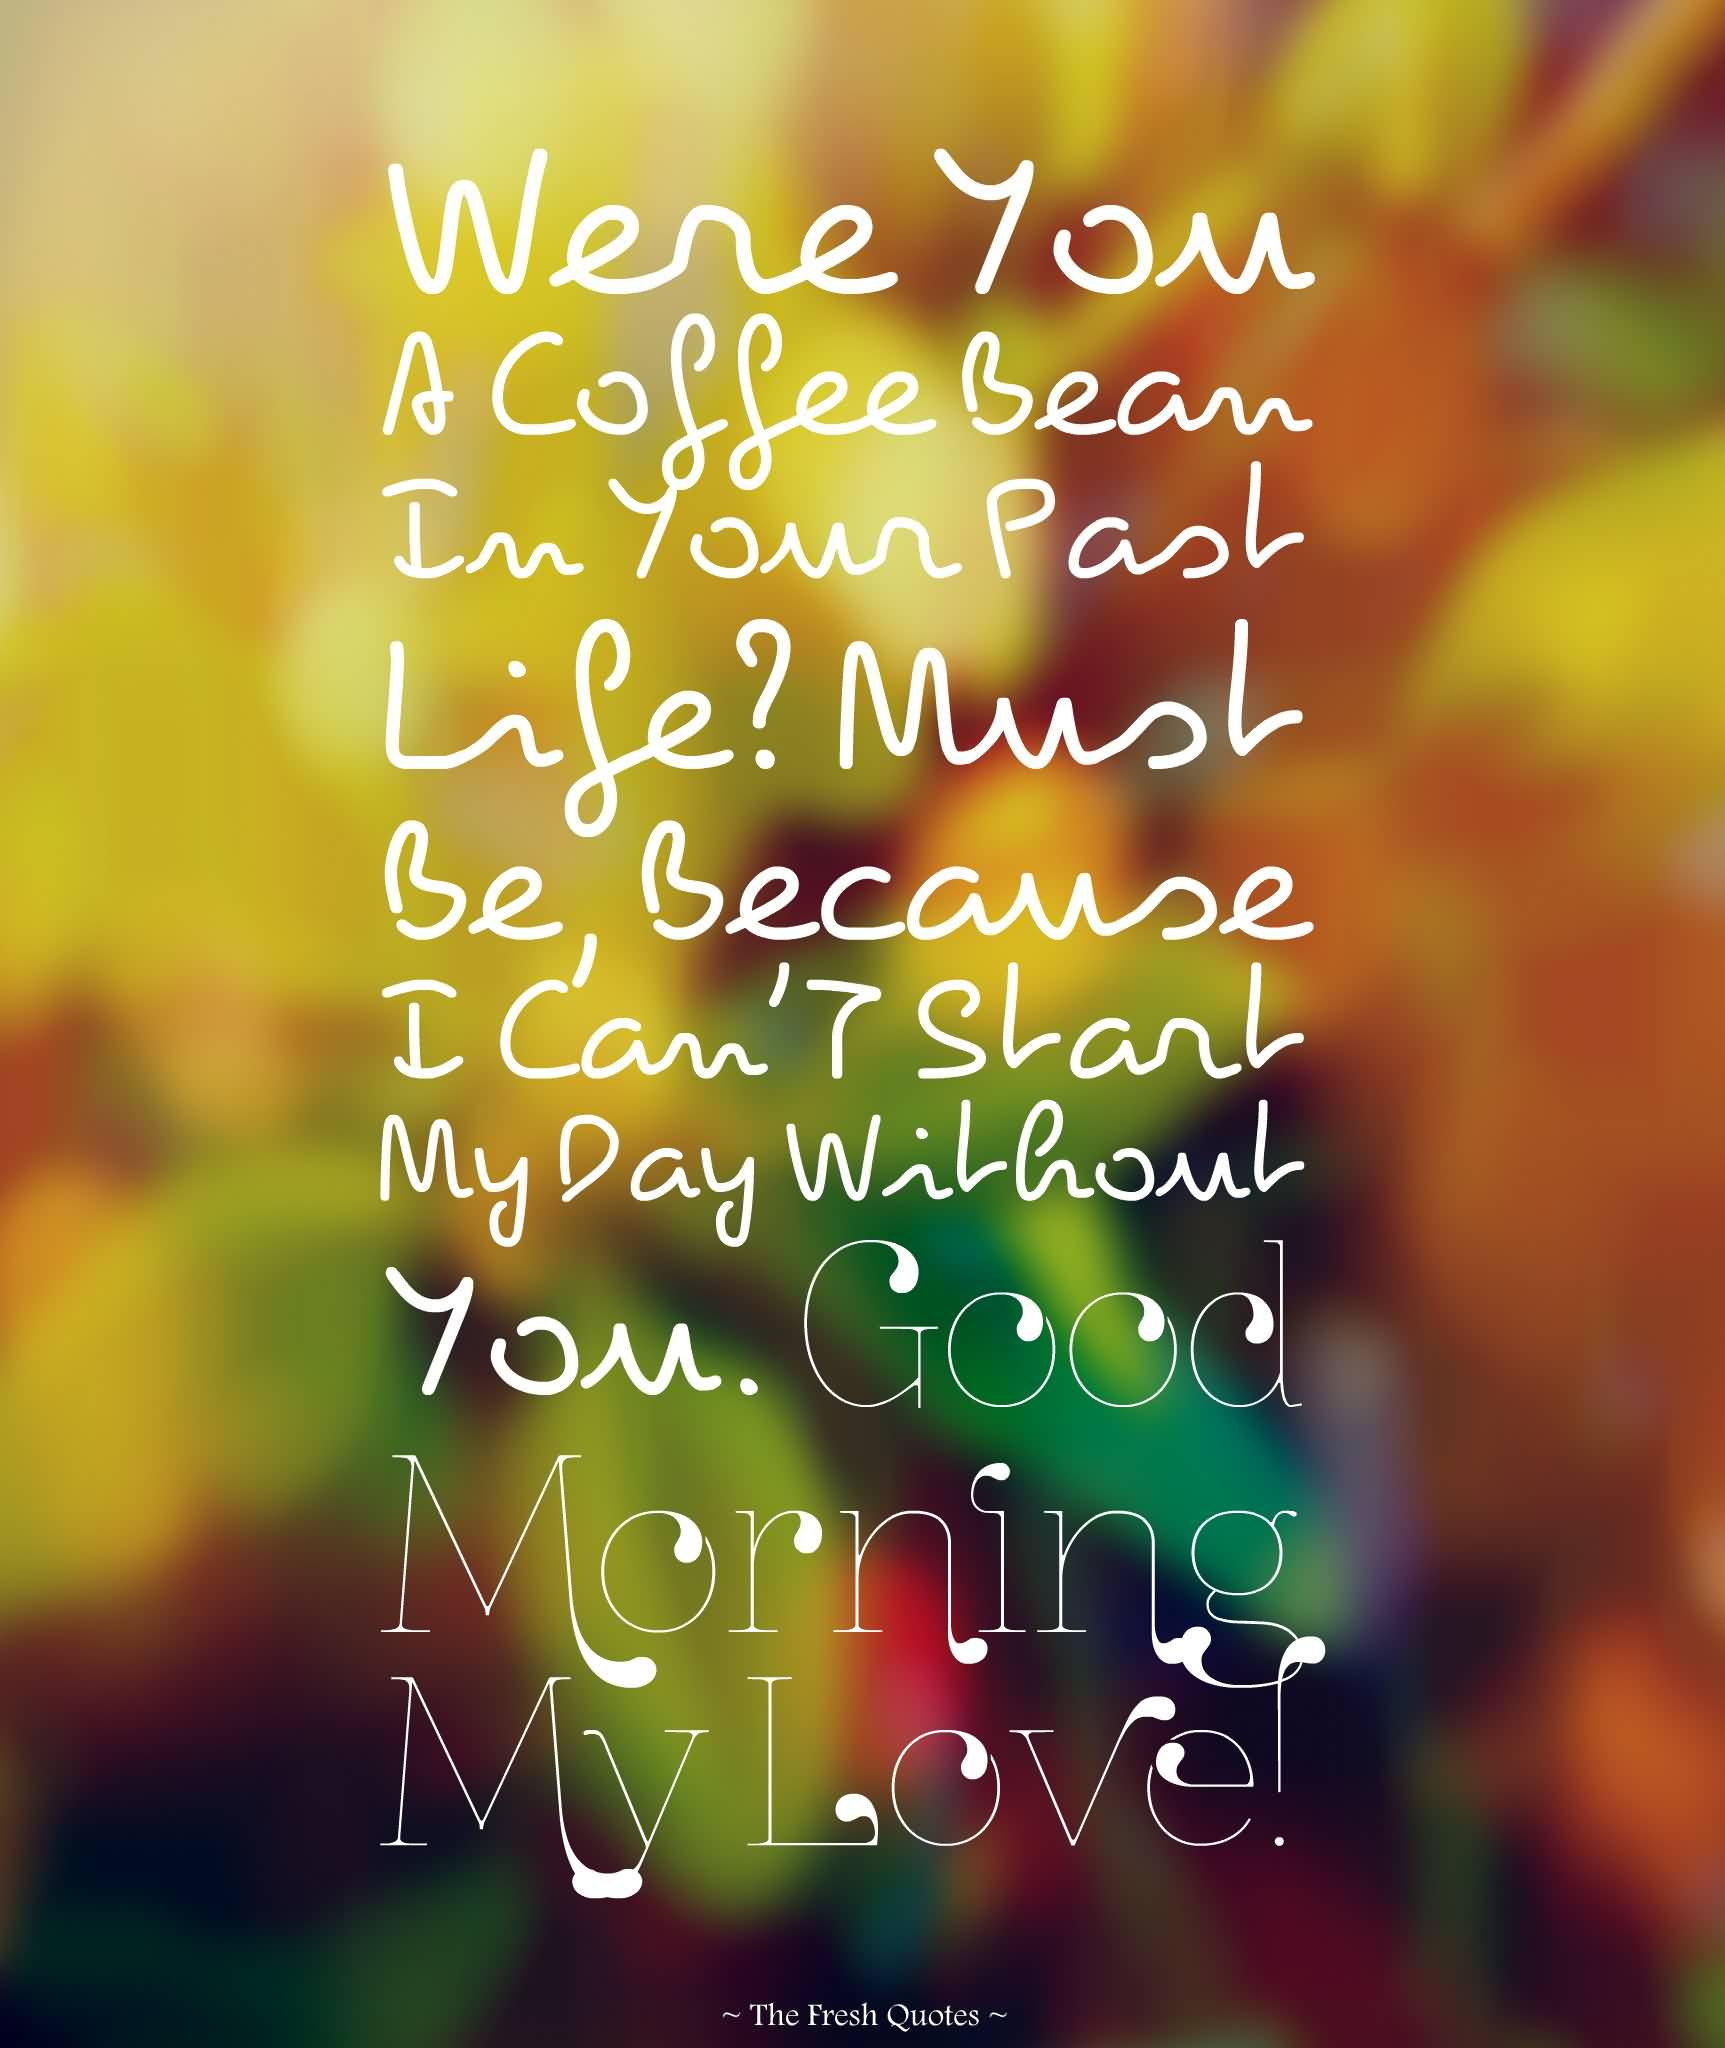 Good Morning My Love Quotes For Him Unique Good Morning My Love Quotes For Him 10  Quotesbae